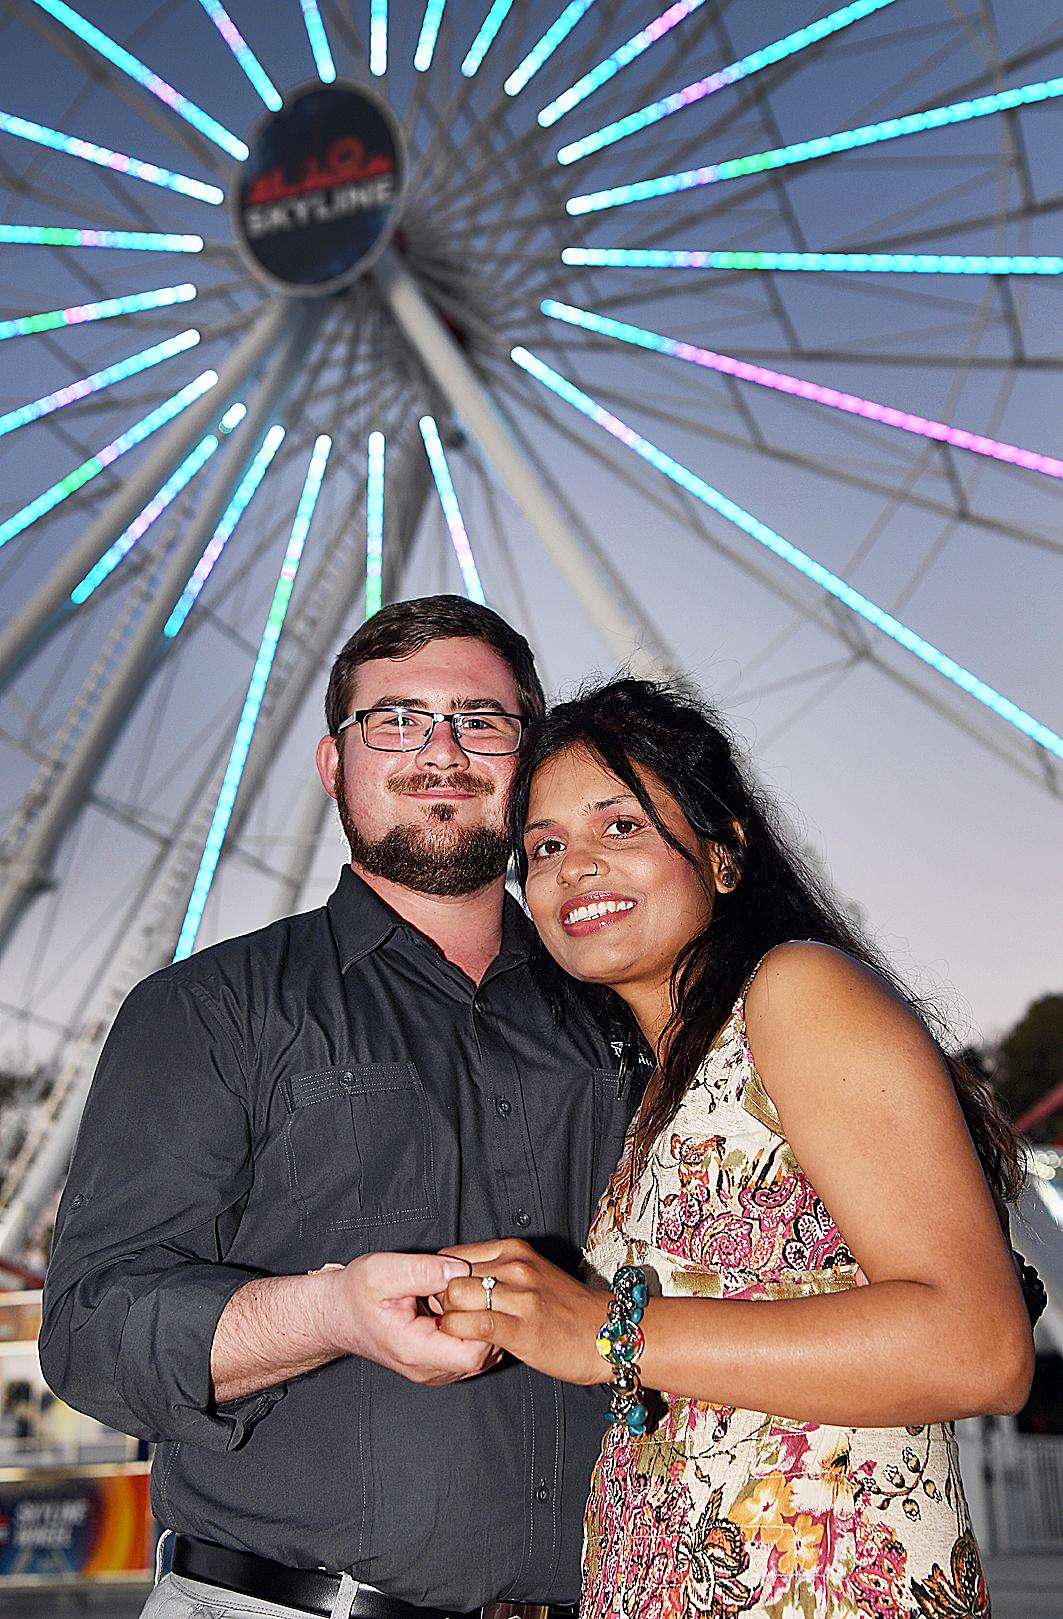 Ferris wheel proposal - Jared Crooks and Pip Depp.